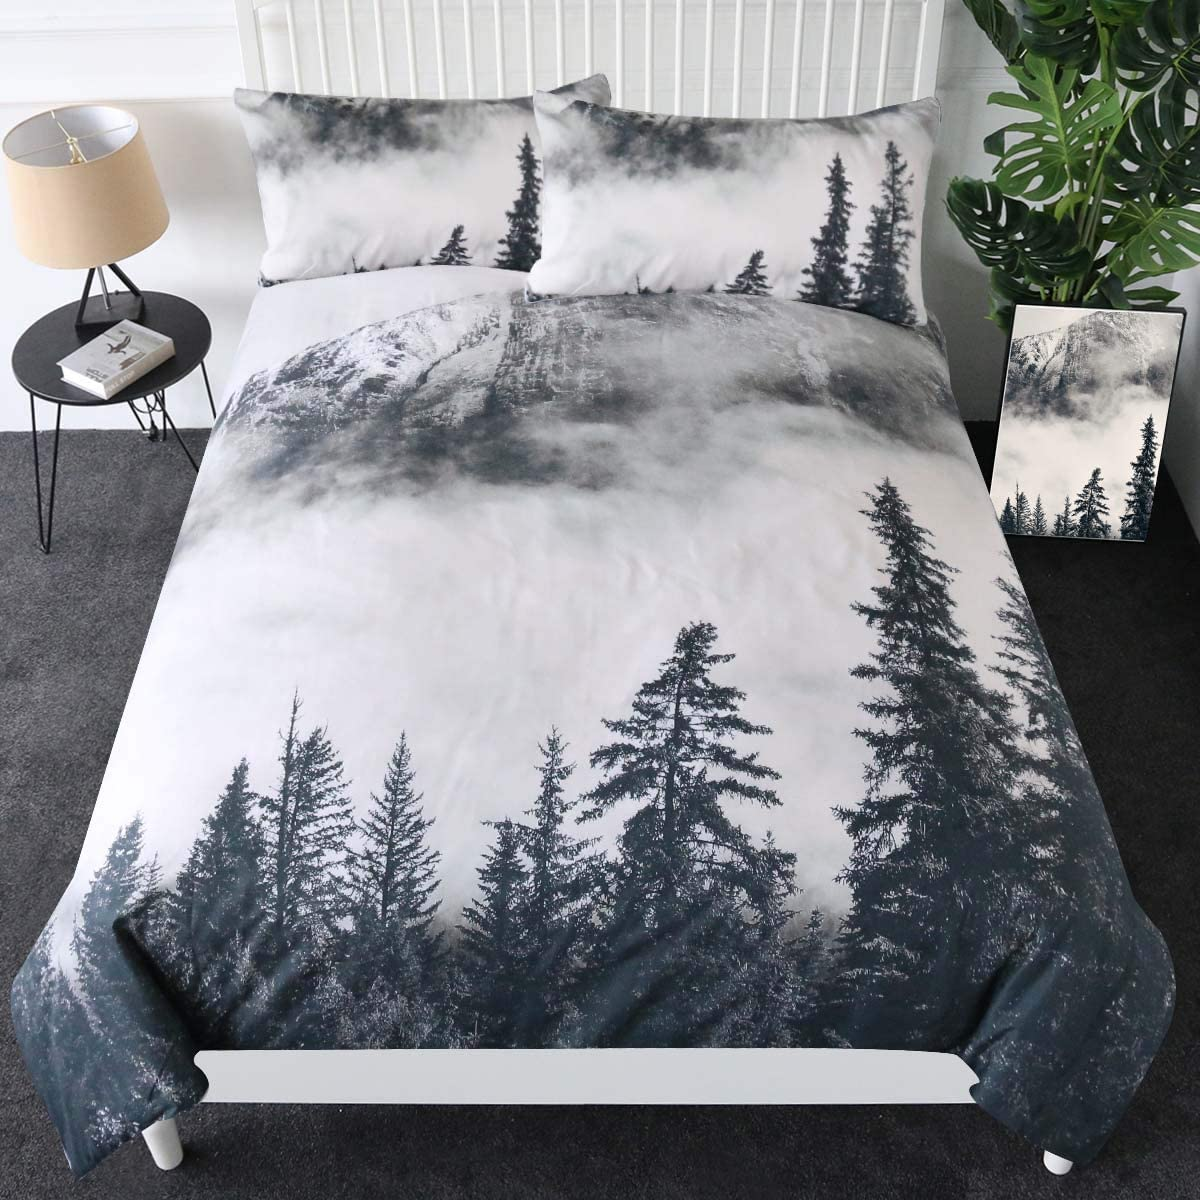 Sleepwish Smoky Mountain Bedding Forest Duvet Cover 3 Pieces Grey Trees Natural Scenery Art Bedspread Nature Lover Gift (King)